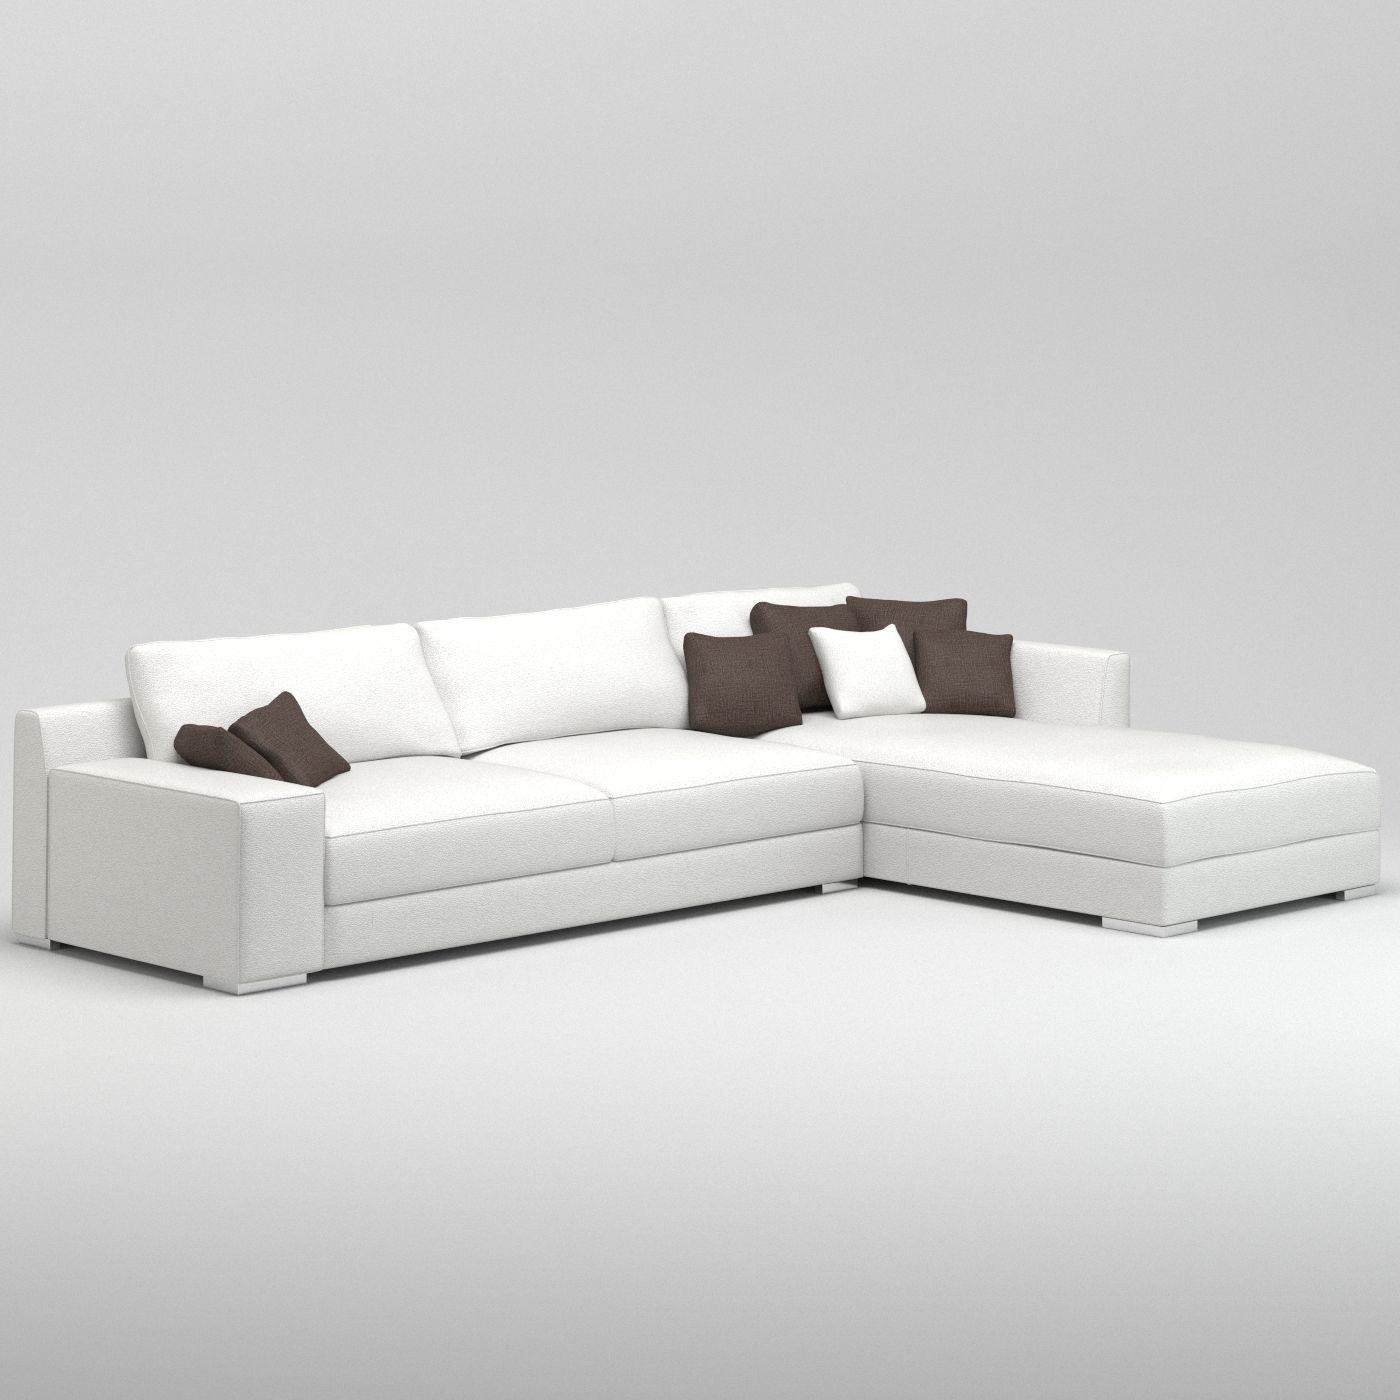 Furniture : Couchtuner Queen Sugar Sectional Sofa Greenville Sc Intended For Greenville Sc Sectional Sofas (View 6 of 10)